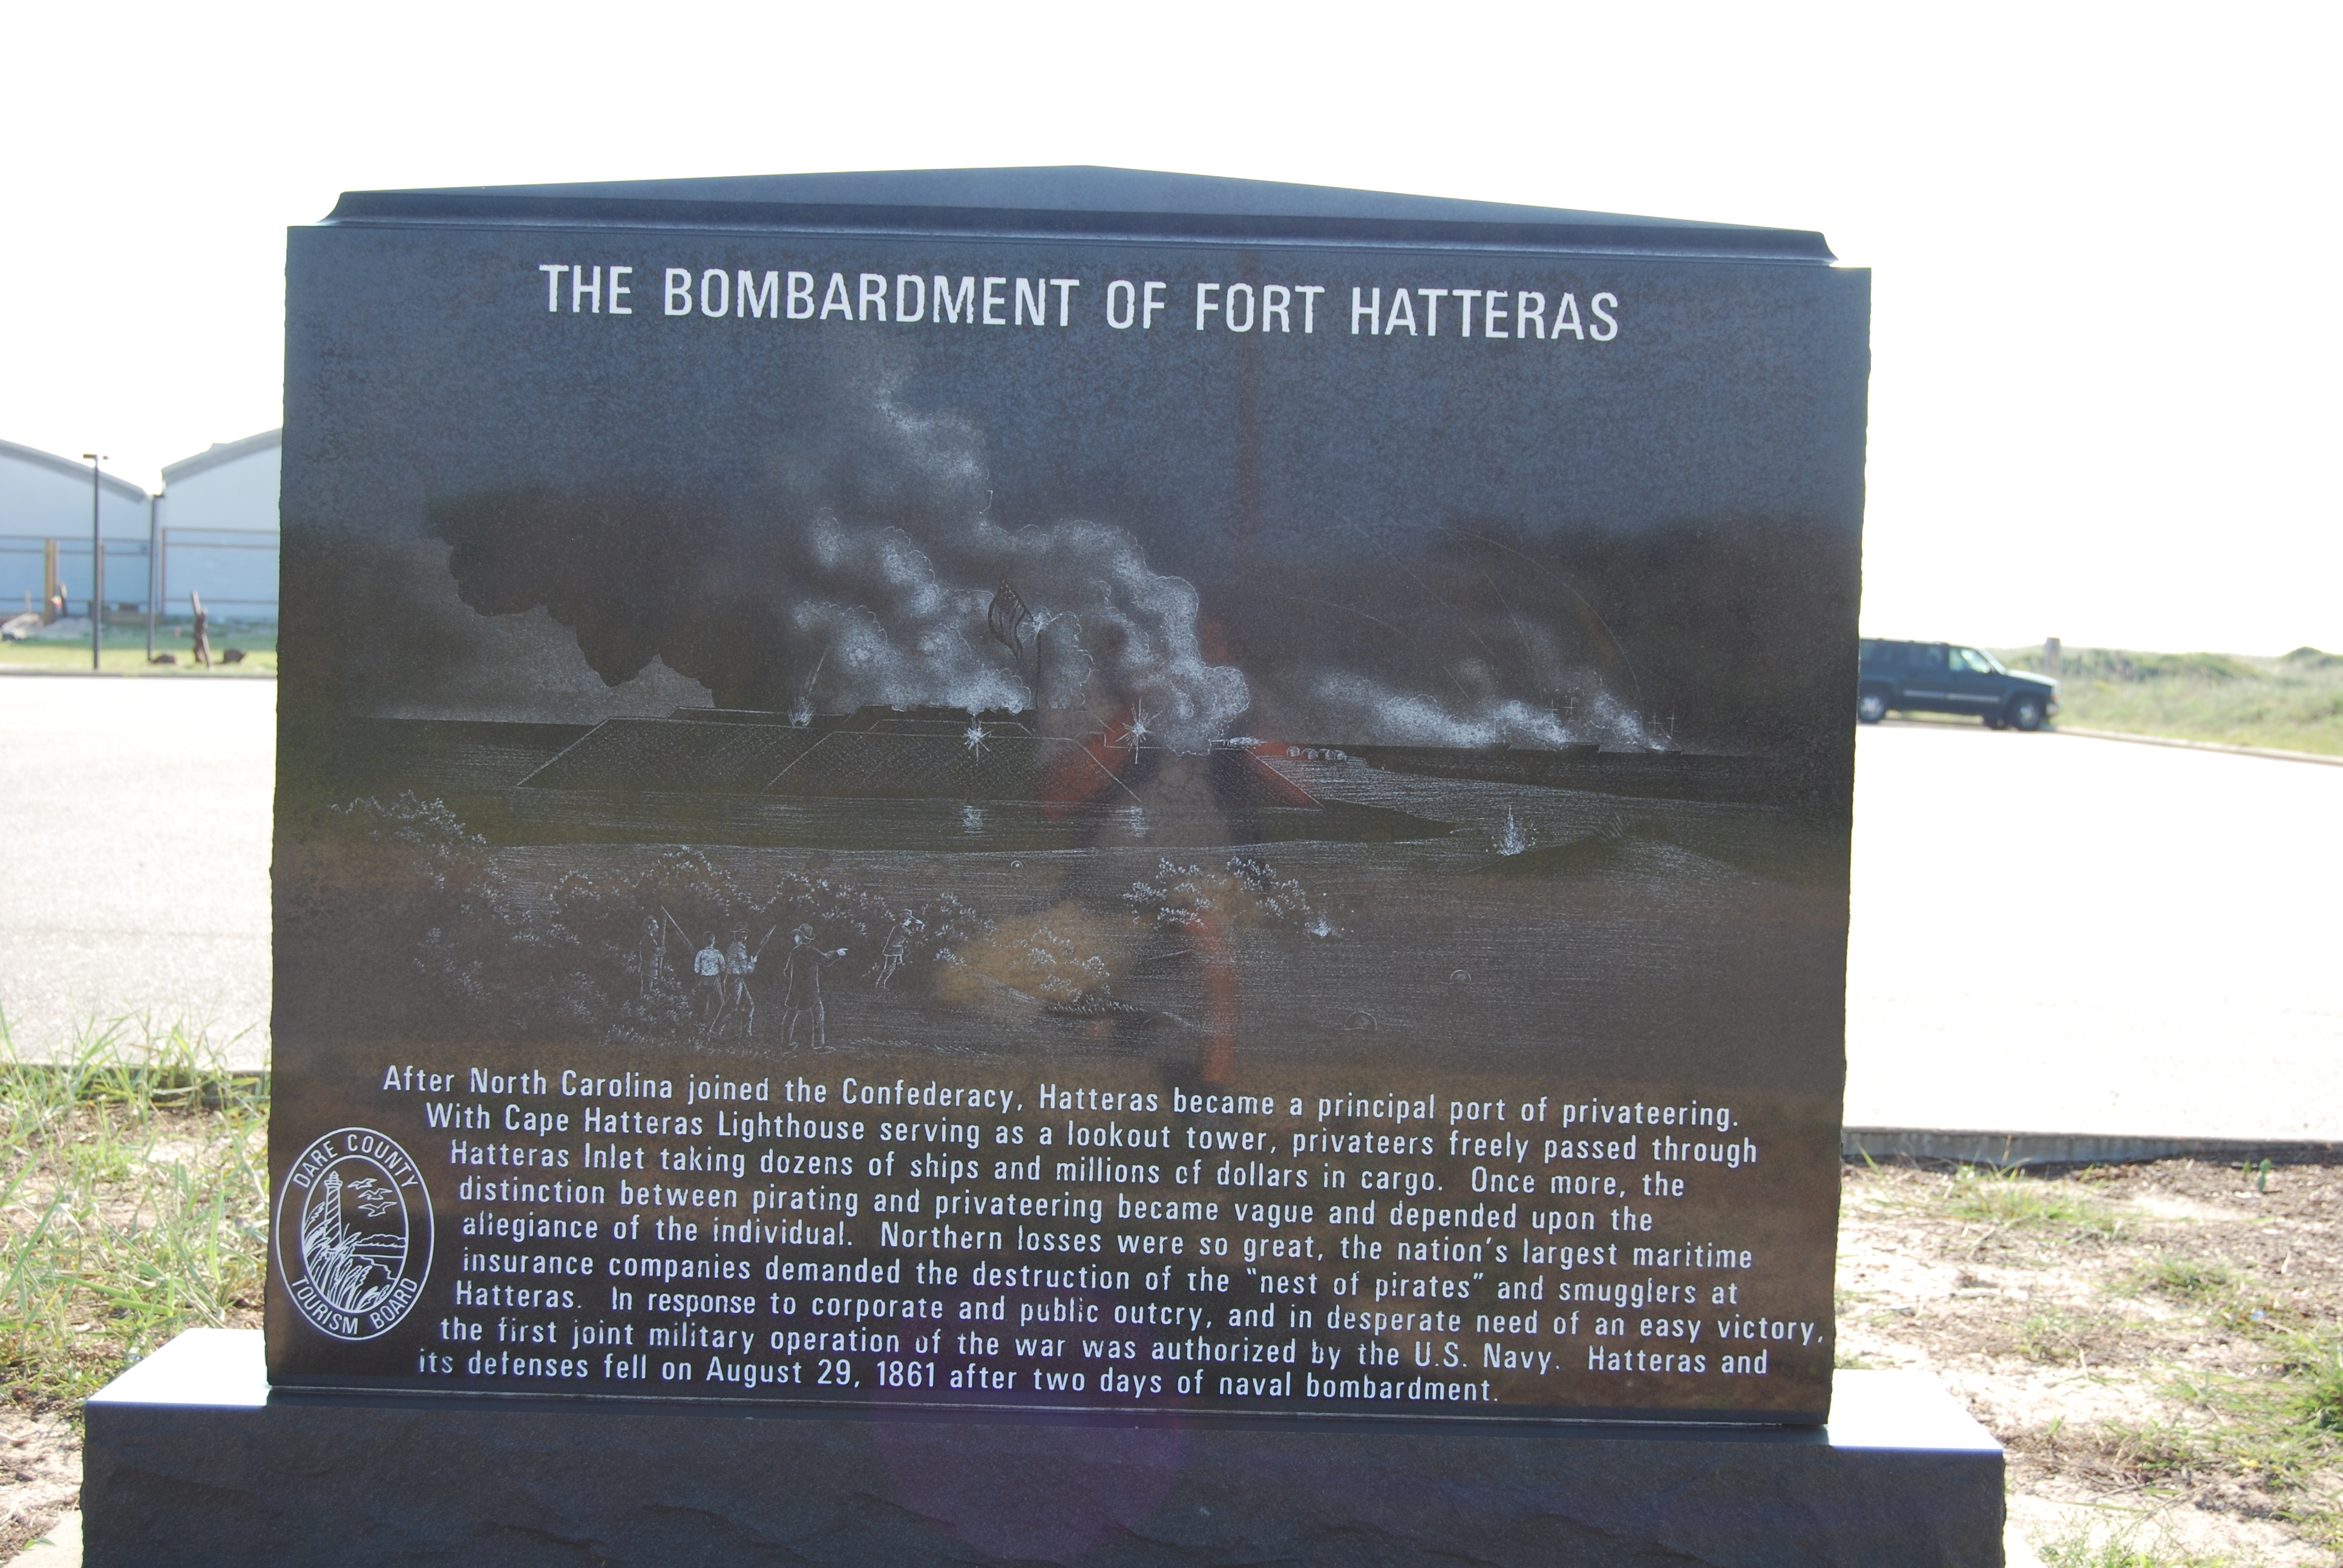 The Bombardment of Fort Hatteras Marker